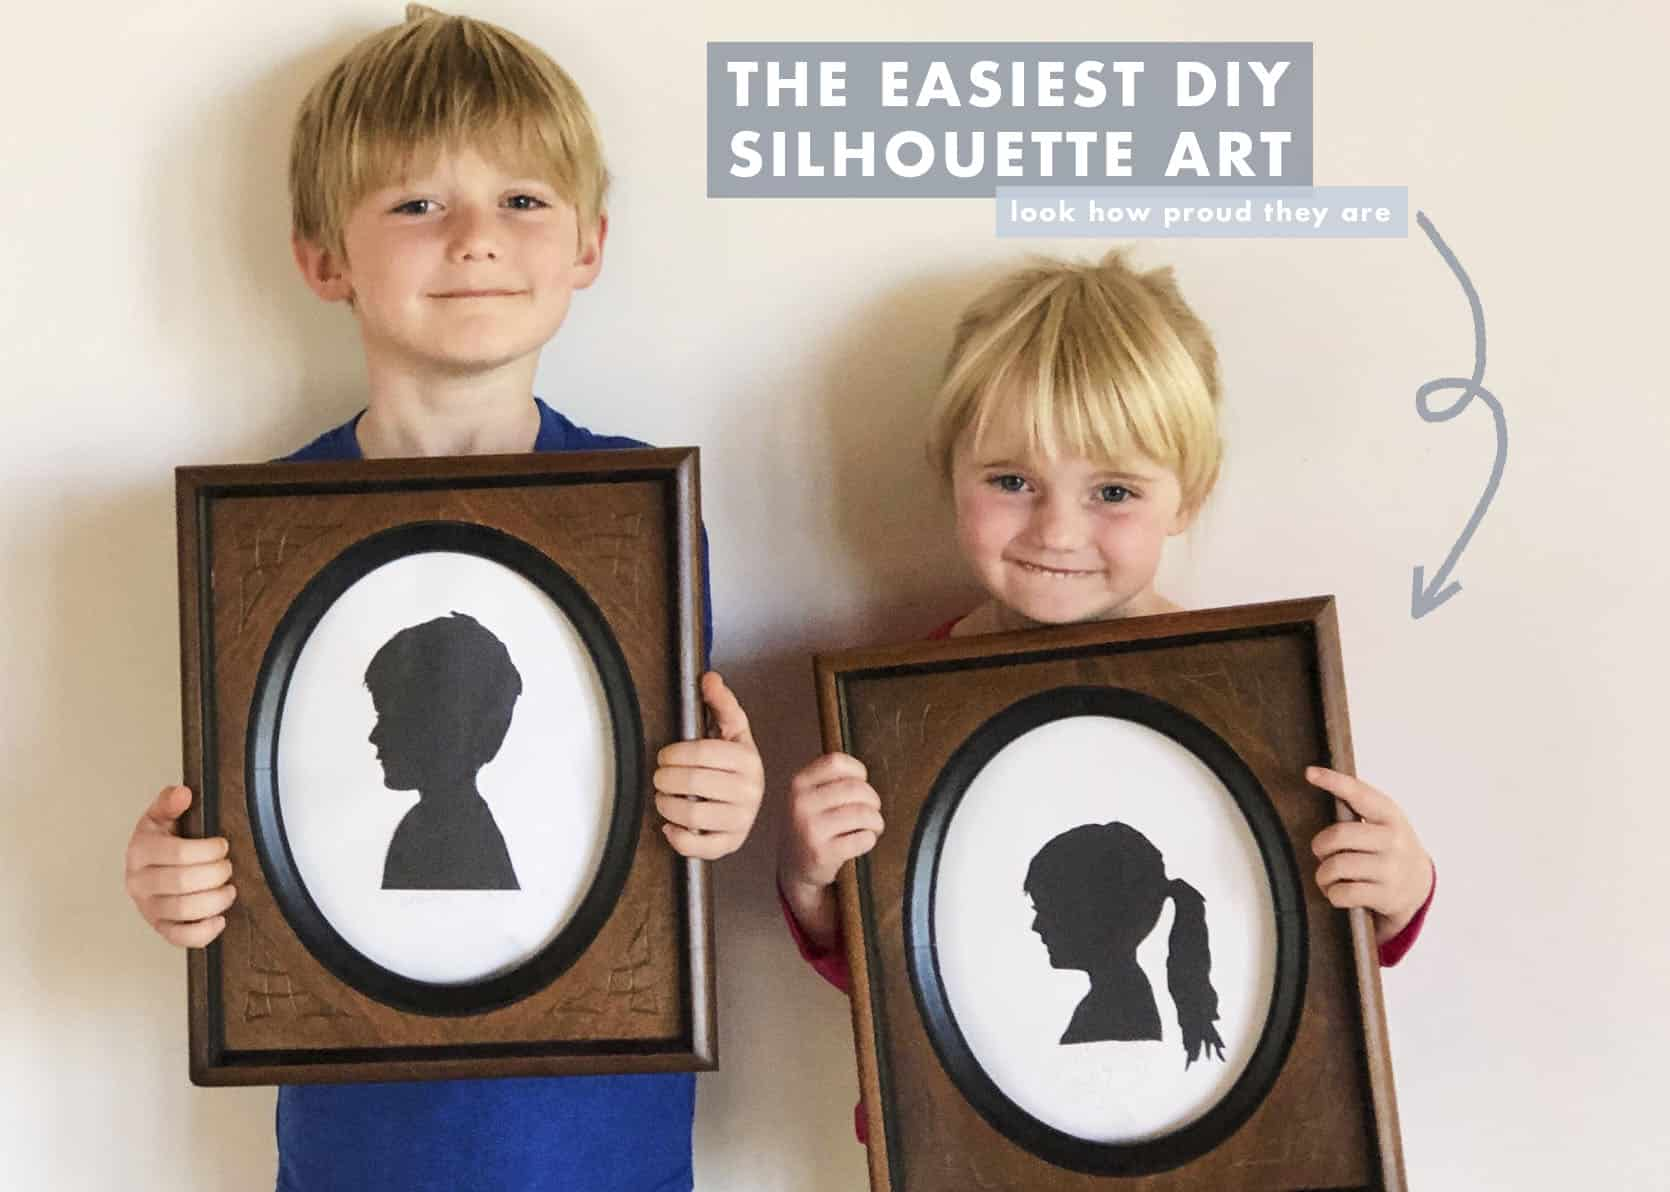 Weekend Art Project Easy Kids Diy Silhouette Portraits Emily Henderson